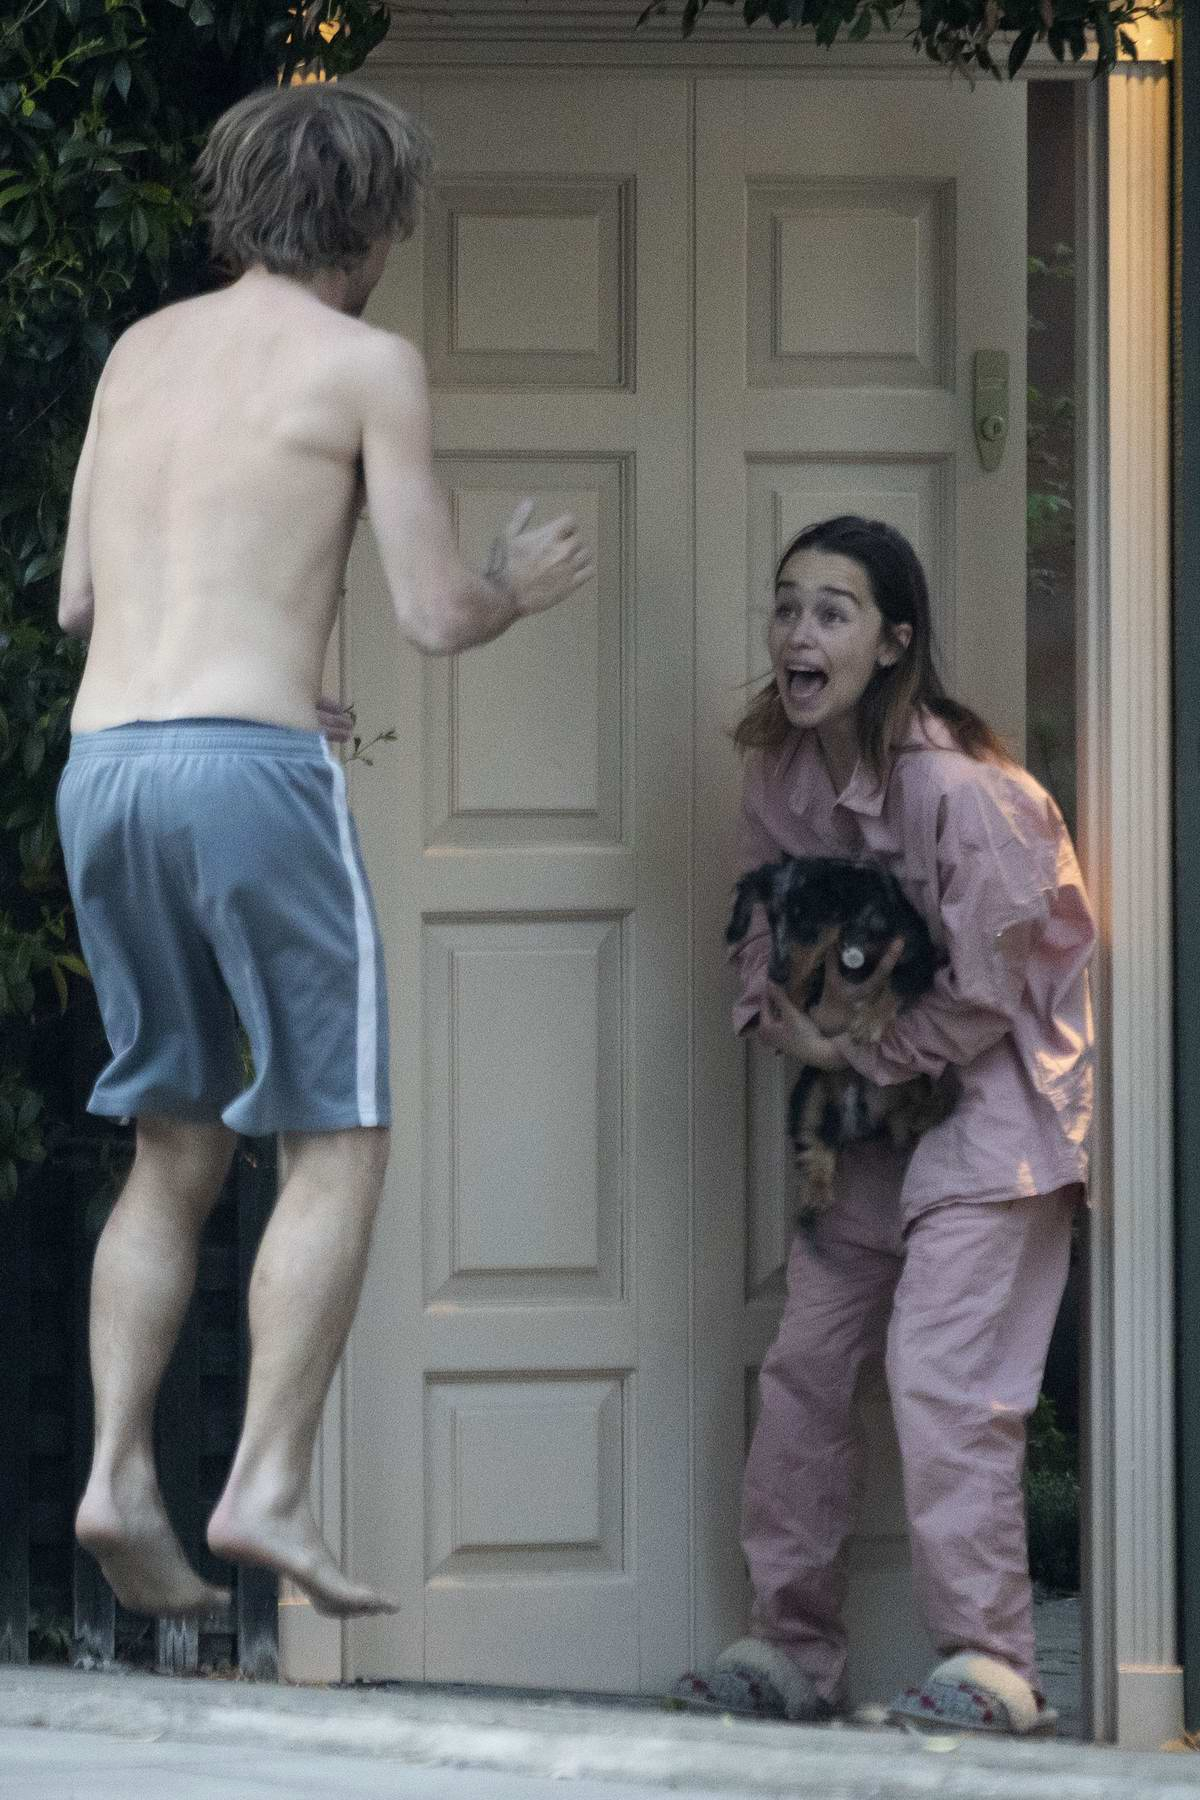 Emilia Clarke seen in pajamas cradling her dog while joining clap for NHS workers with mystery man in London, UK